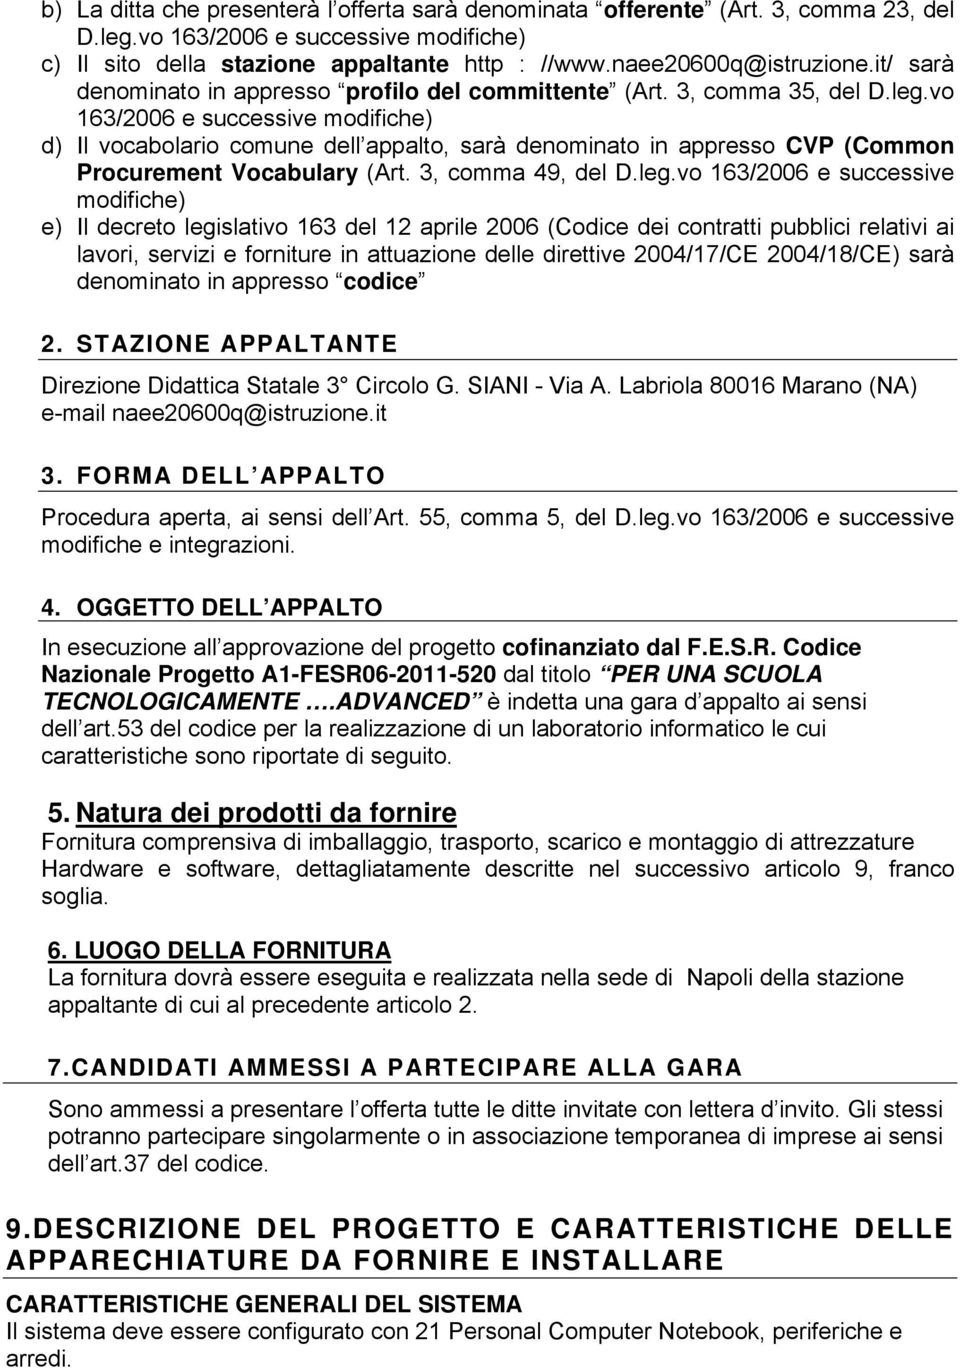 vo 163/2006 e successive modifiche) d) Il vocabolario comune dell appalto, sarà denominato in appresso CVP (Common Procurement Vocabulary (Art. 3, comma 49, del D.leg.